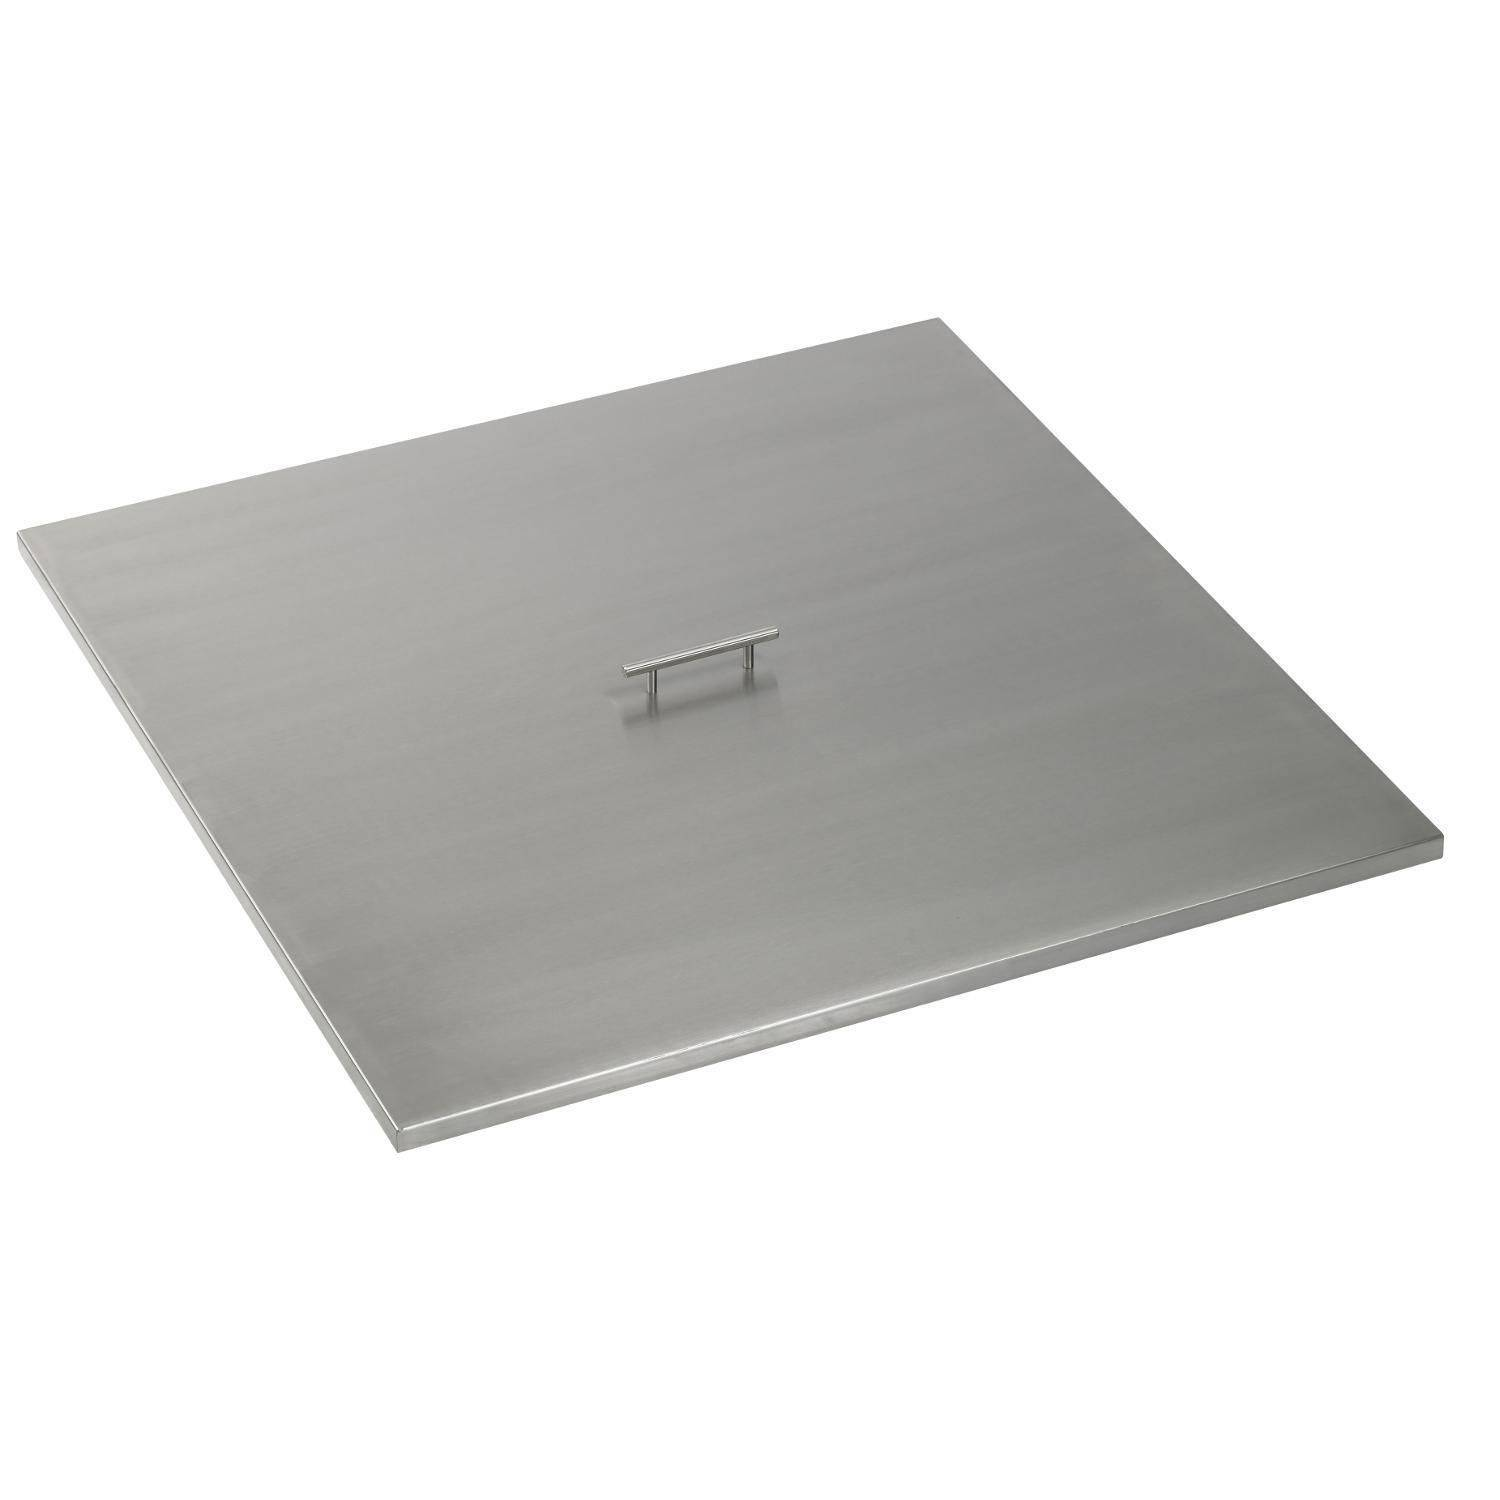 """16"""" x 16"""" Square Stainless Steel Fire Pit Cover -The Outdoor Plus"""